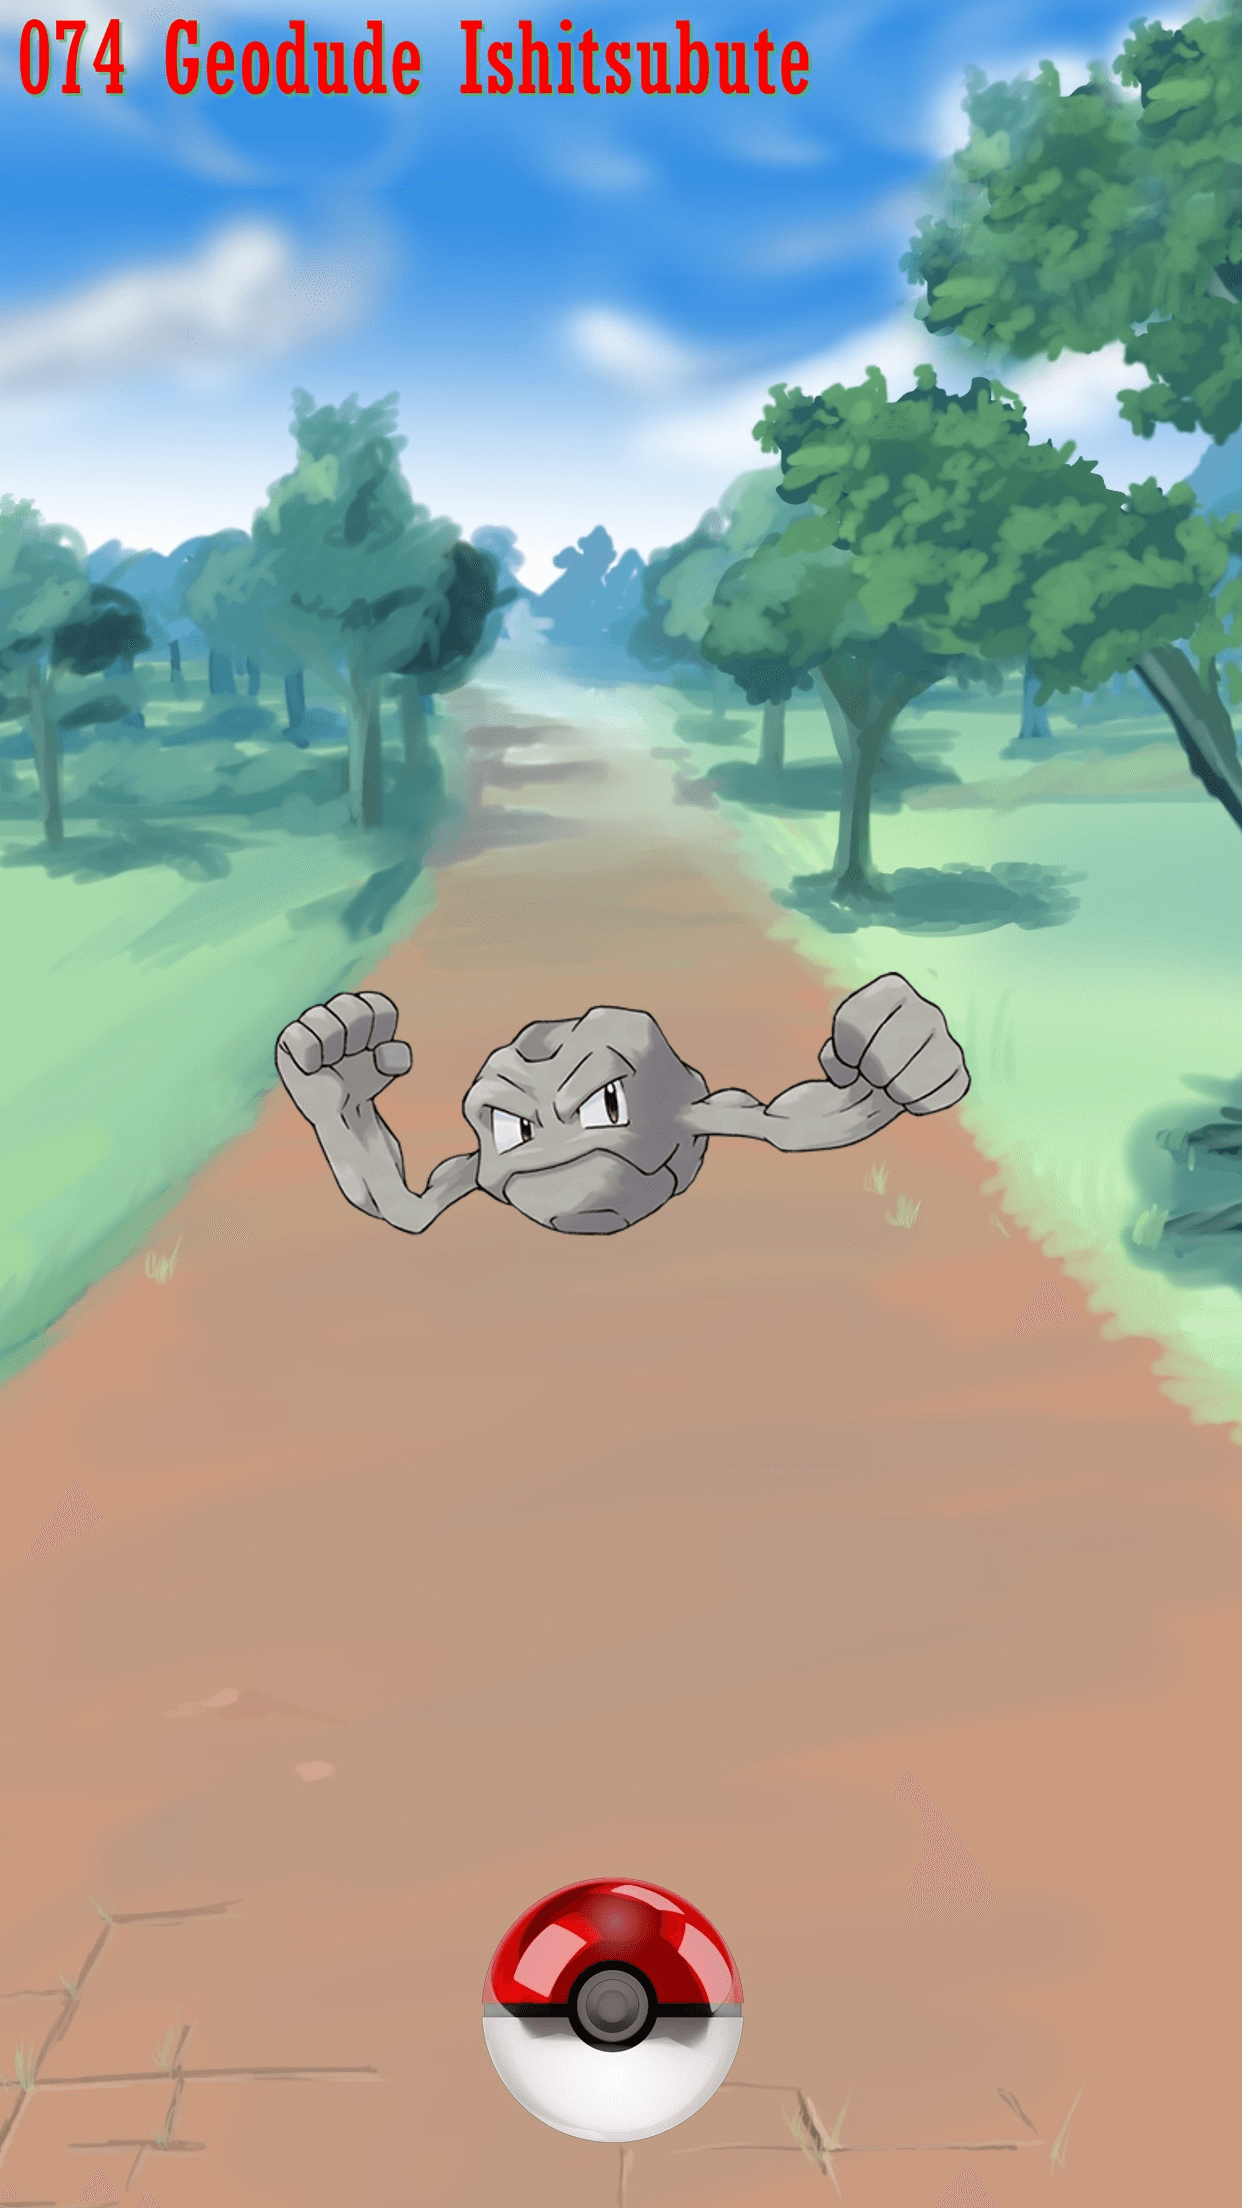 074 Street Pokeball Geodude Ishitsubute | Wallpaper